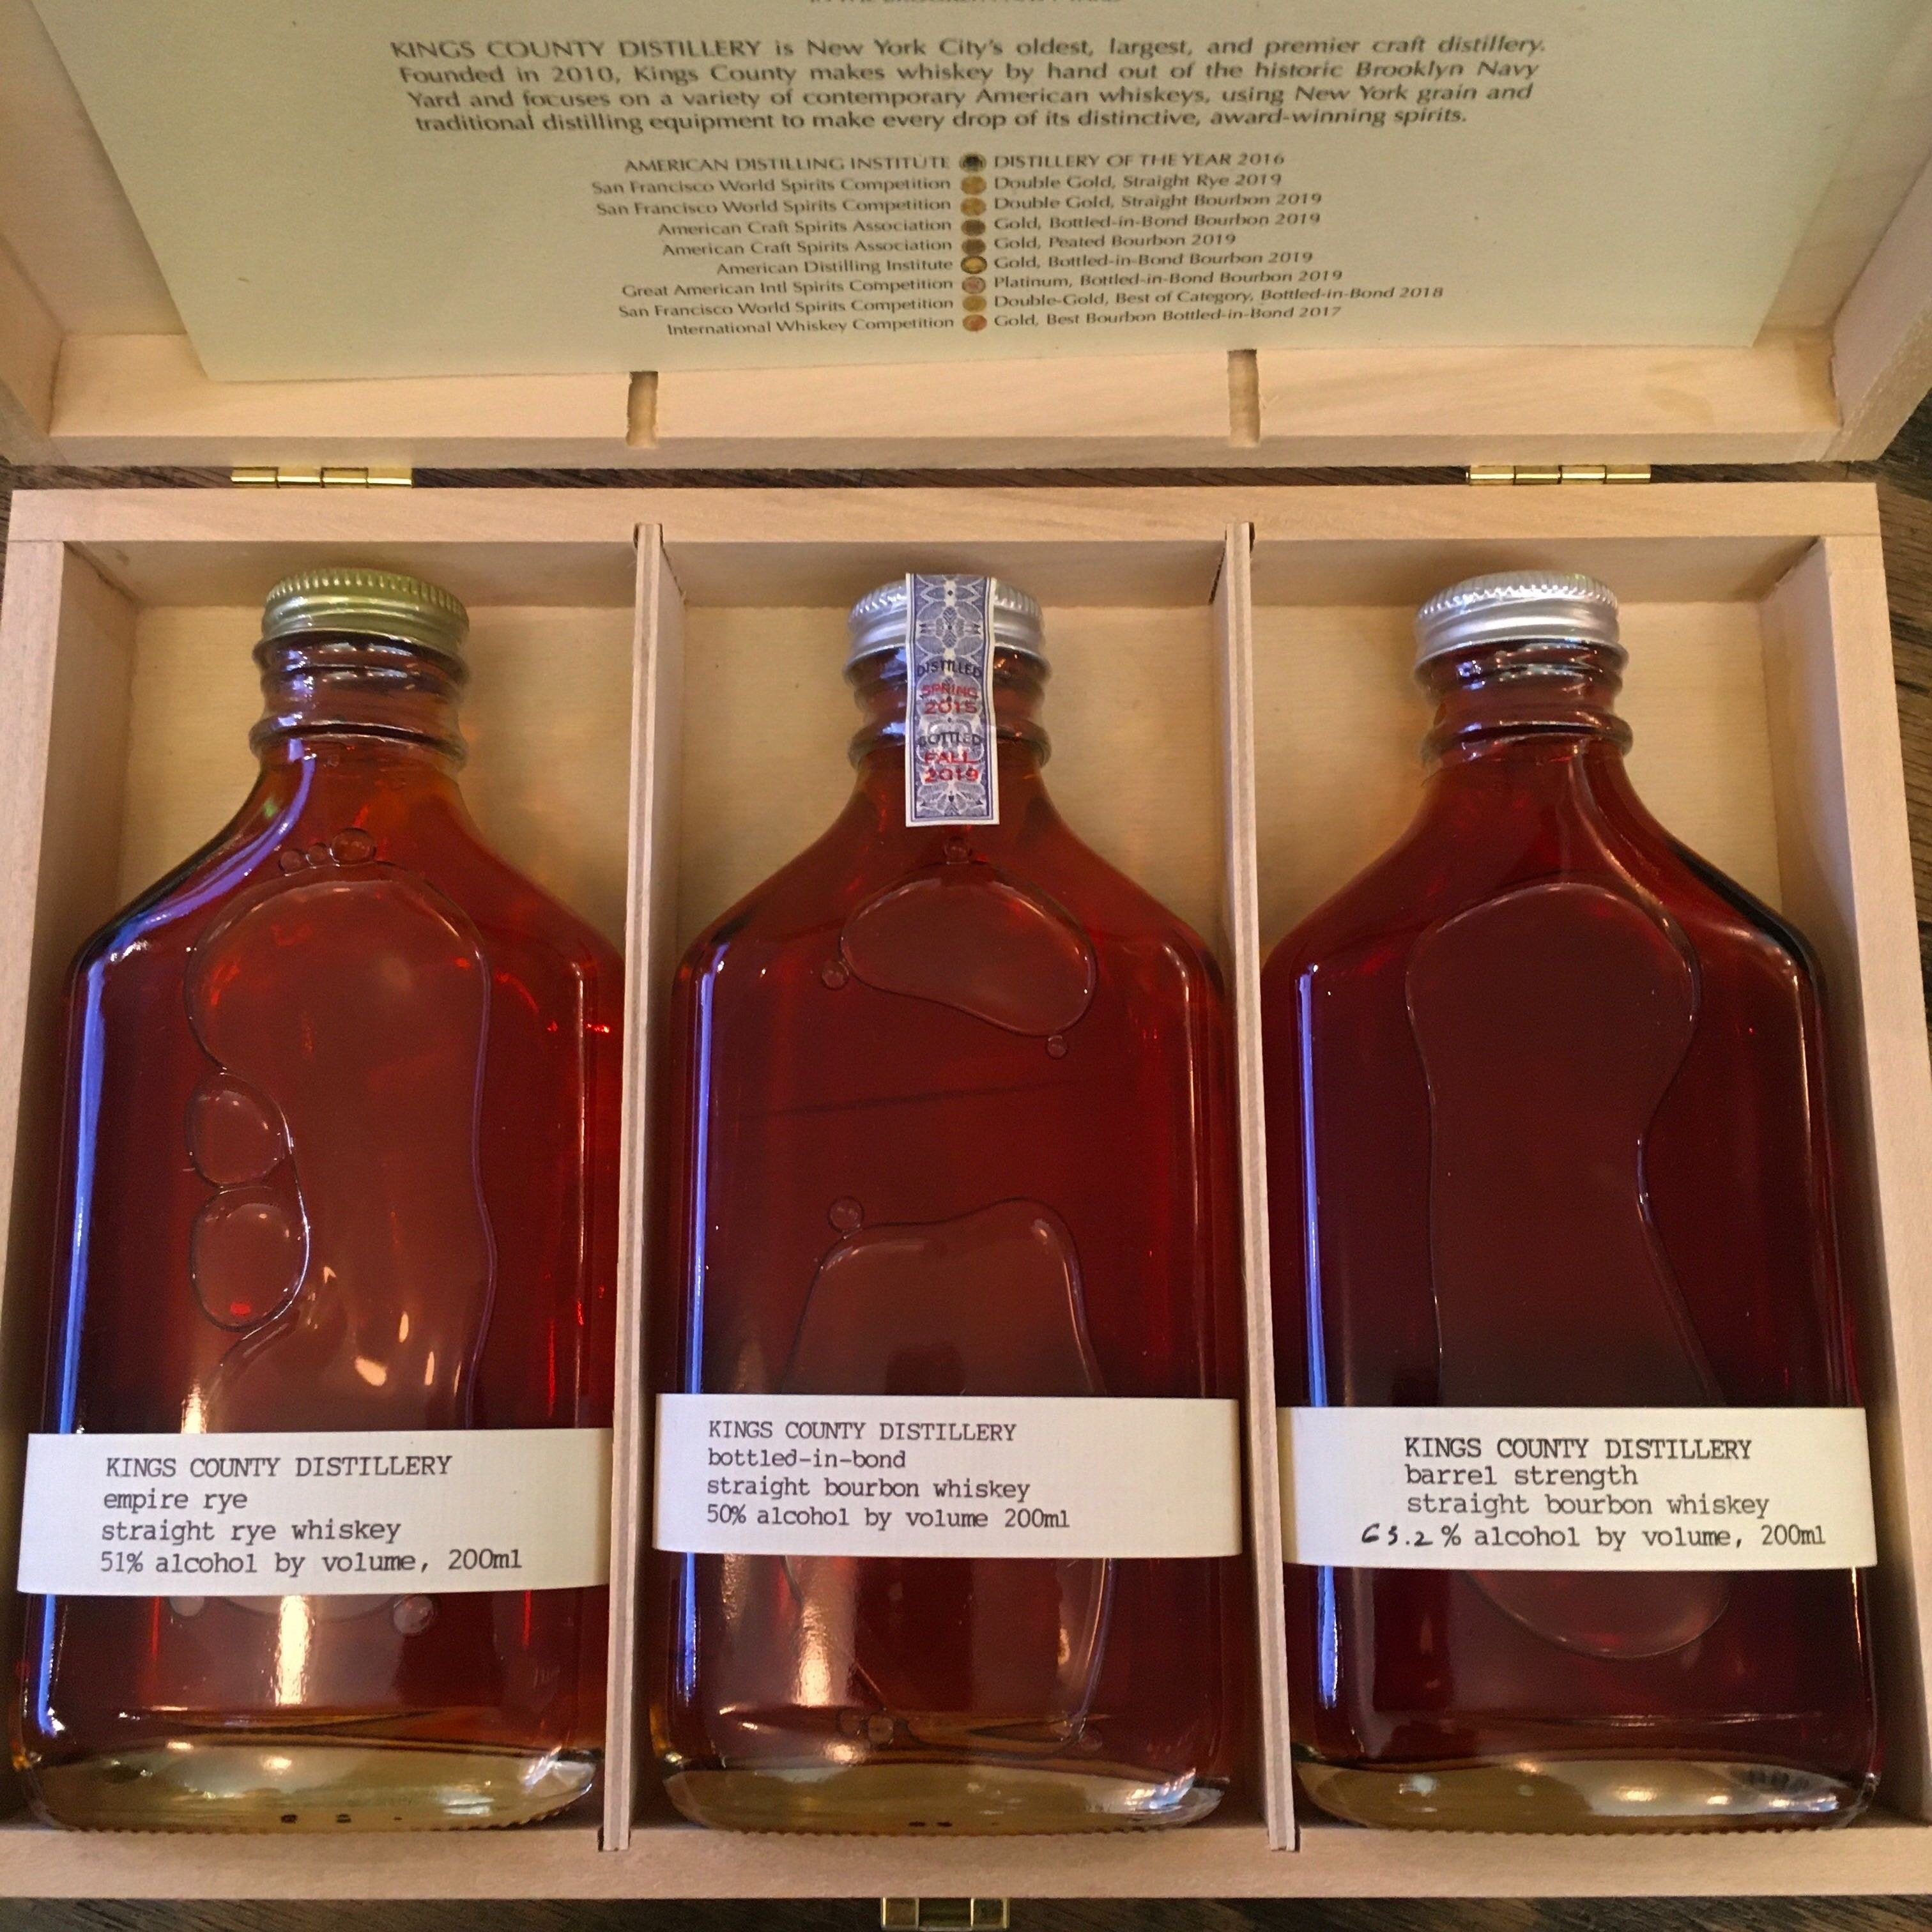 Kings County Distillery Whiskey Gift Set Empire Rye Bottled In Bond B De Wine Spot Curated Whiskey Small Batch Wines And Sakes